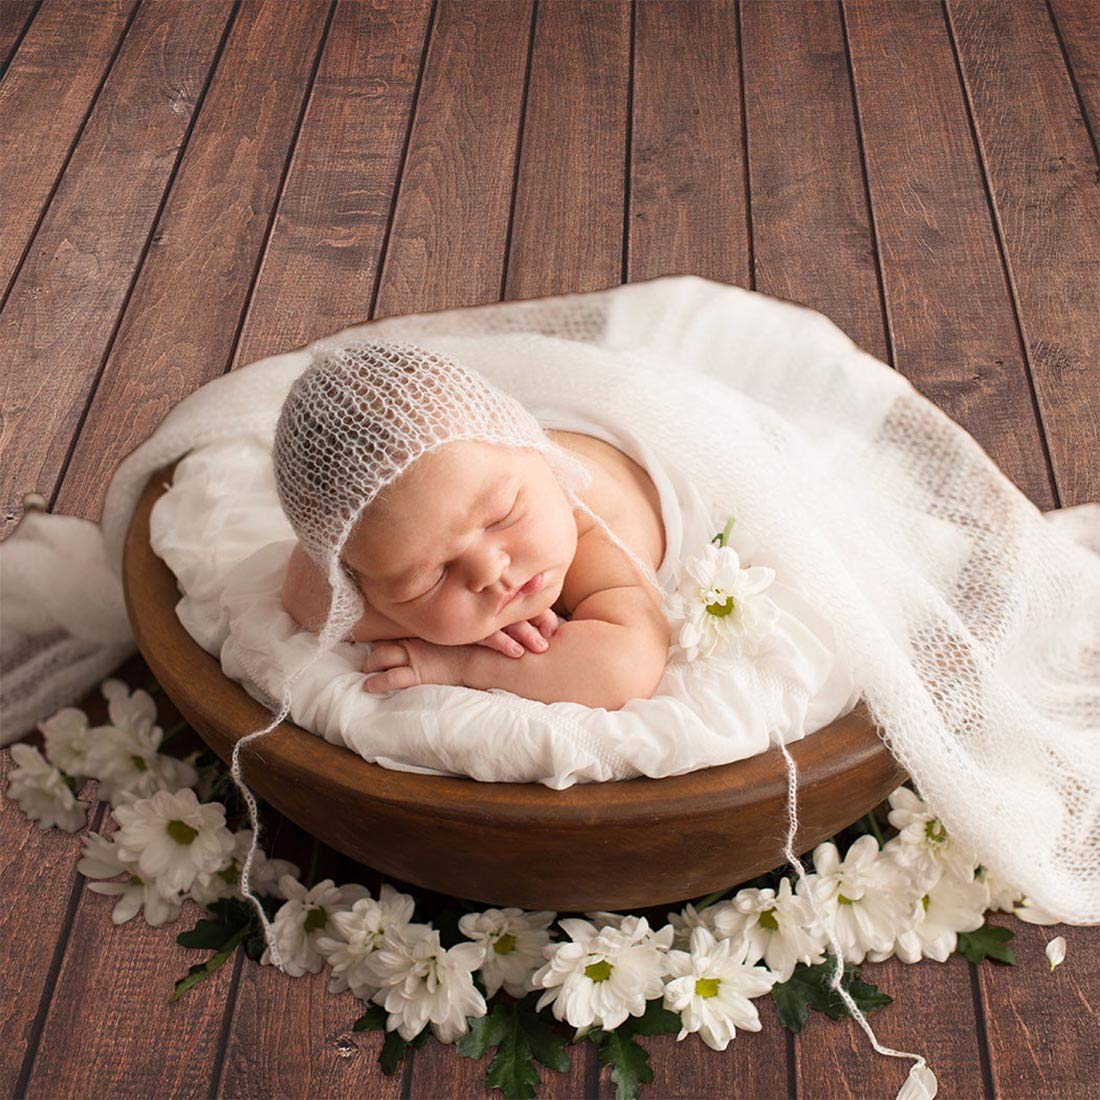 Allenjoy 7x5ft Fabric Vintage Brown Wood Backdrops for Newborn Photography Wrinkle Free Rustic Russet Grunge Wooden Floor Planks Wall Baby Portrait Still Life Product Photographer Photo Studio Props by Allenjoy (Image #3)